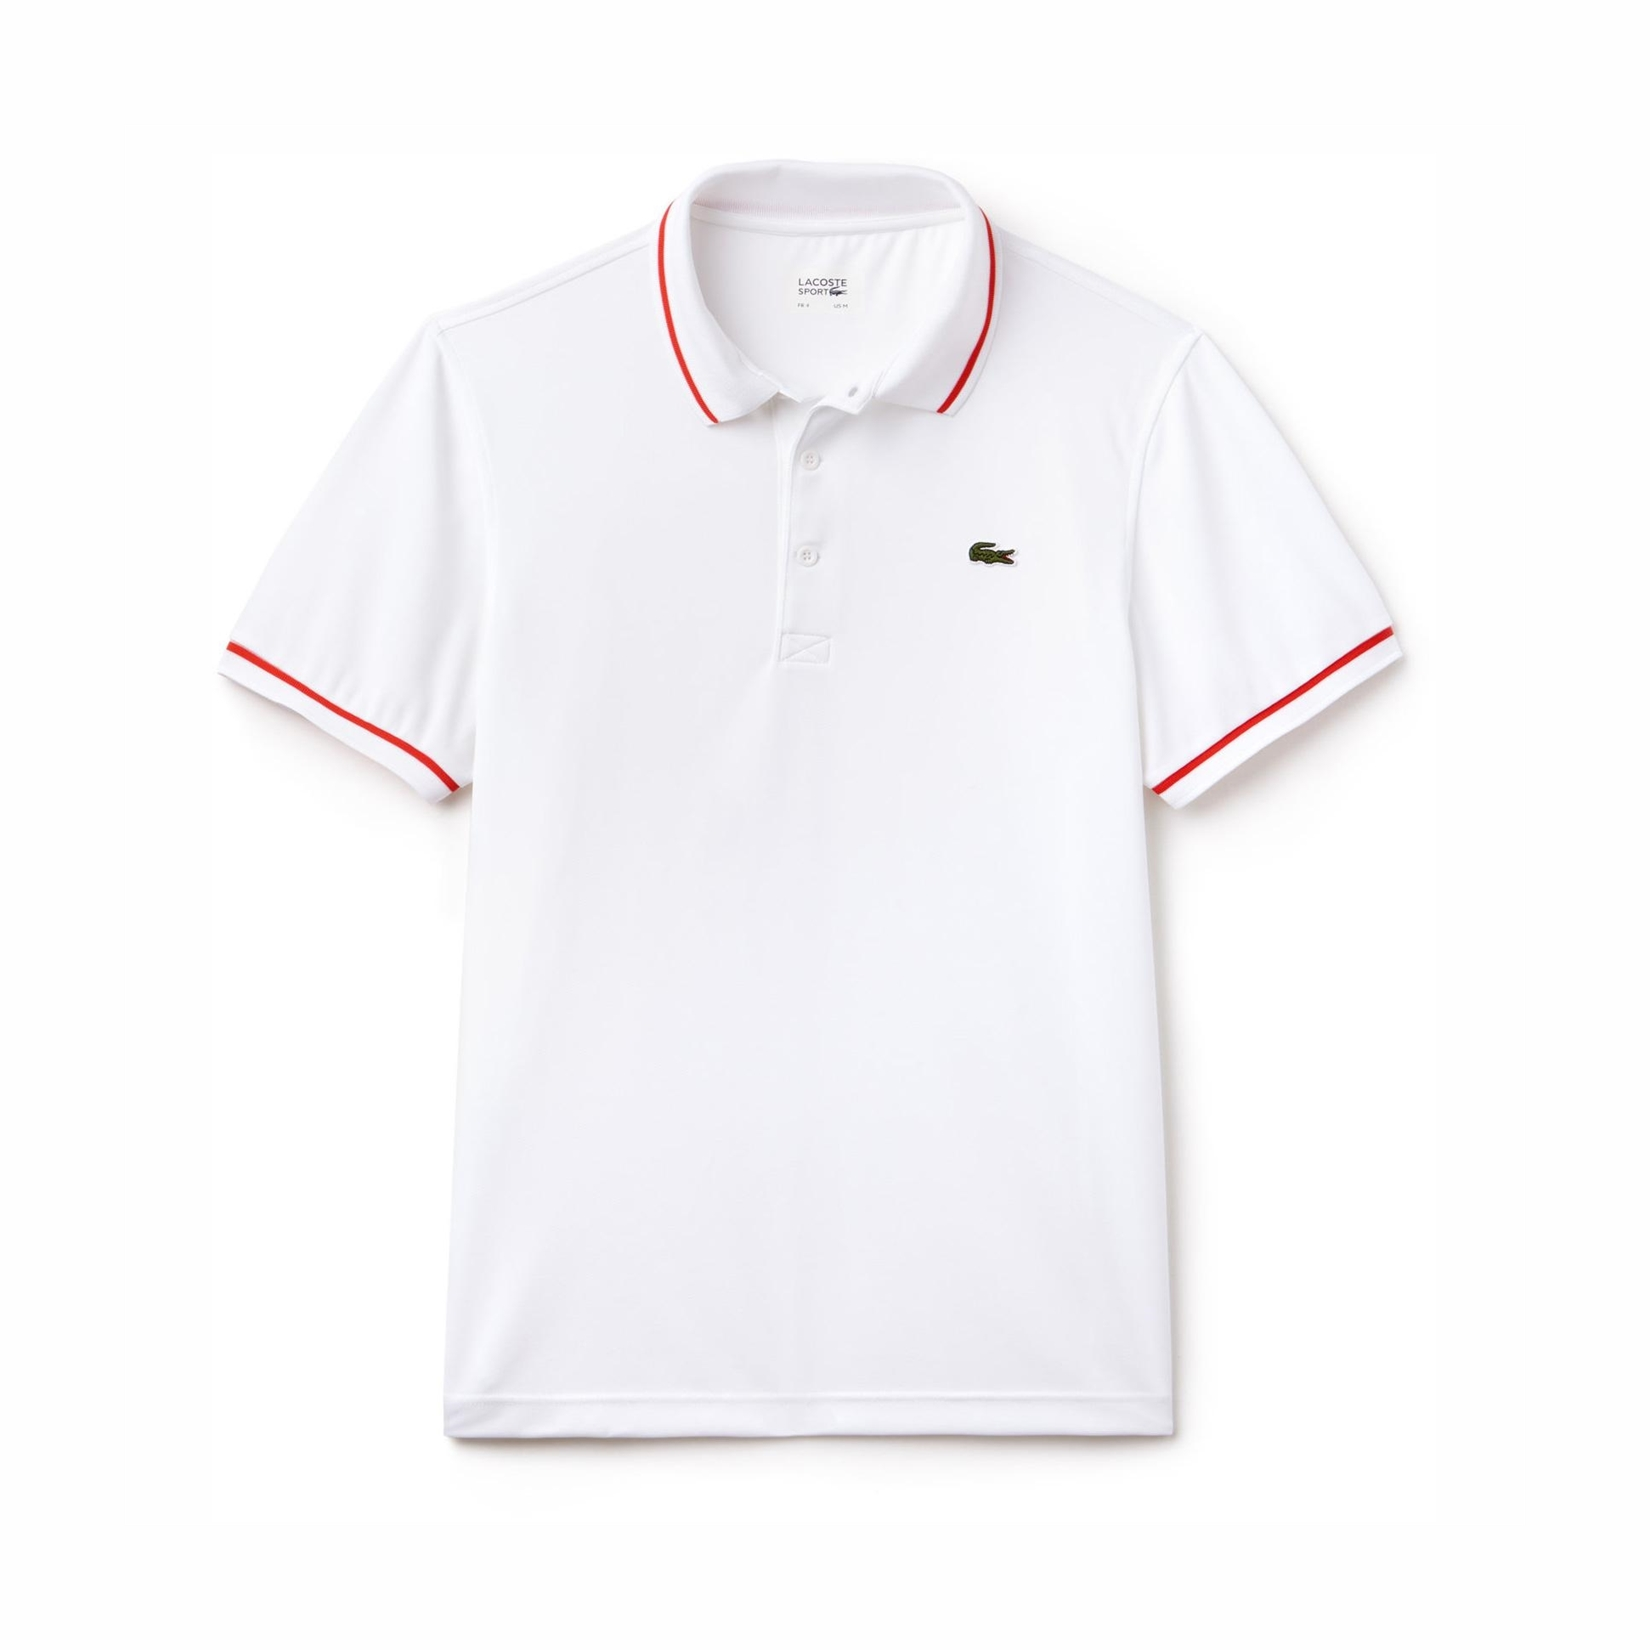 Lacoste Ultra Dry Tipped Polo White/Red M